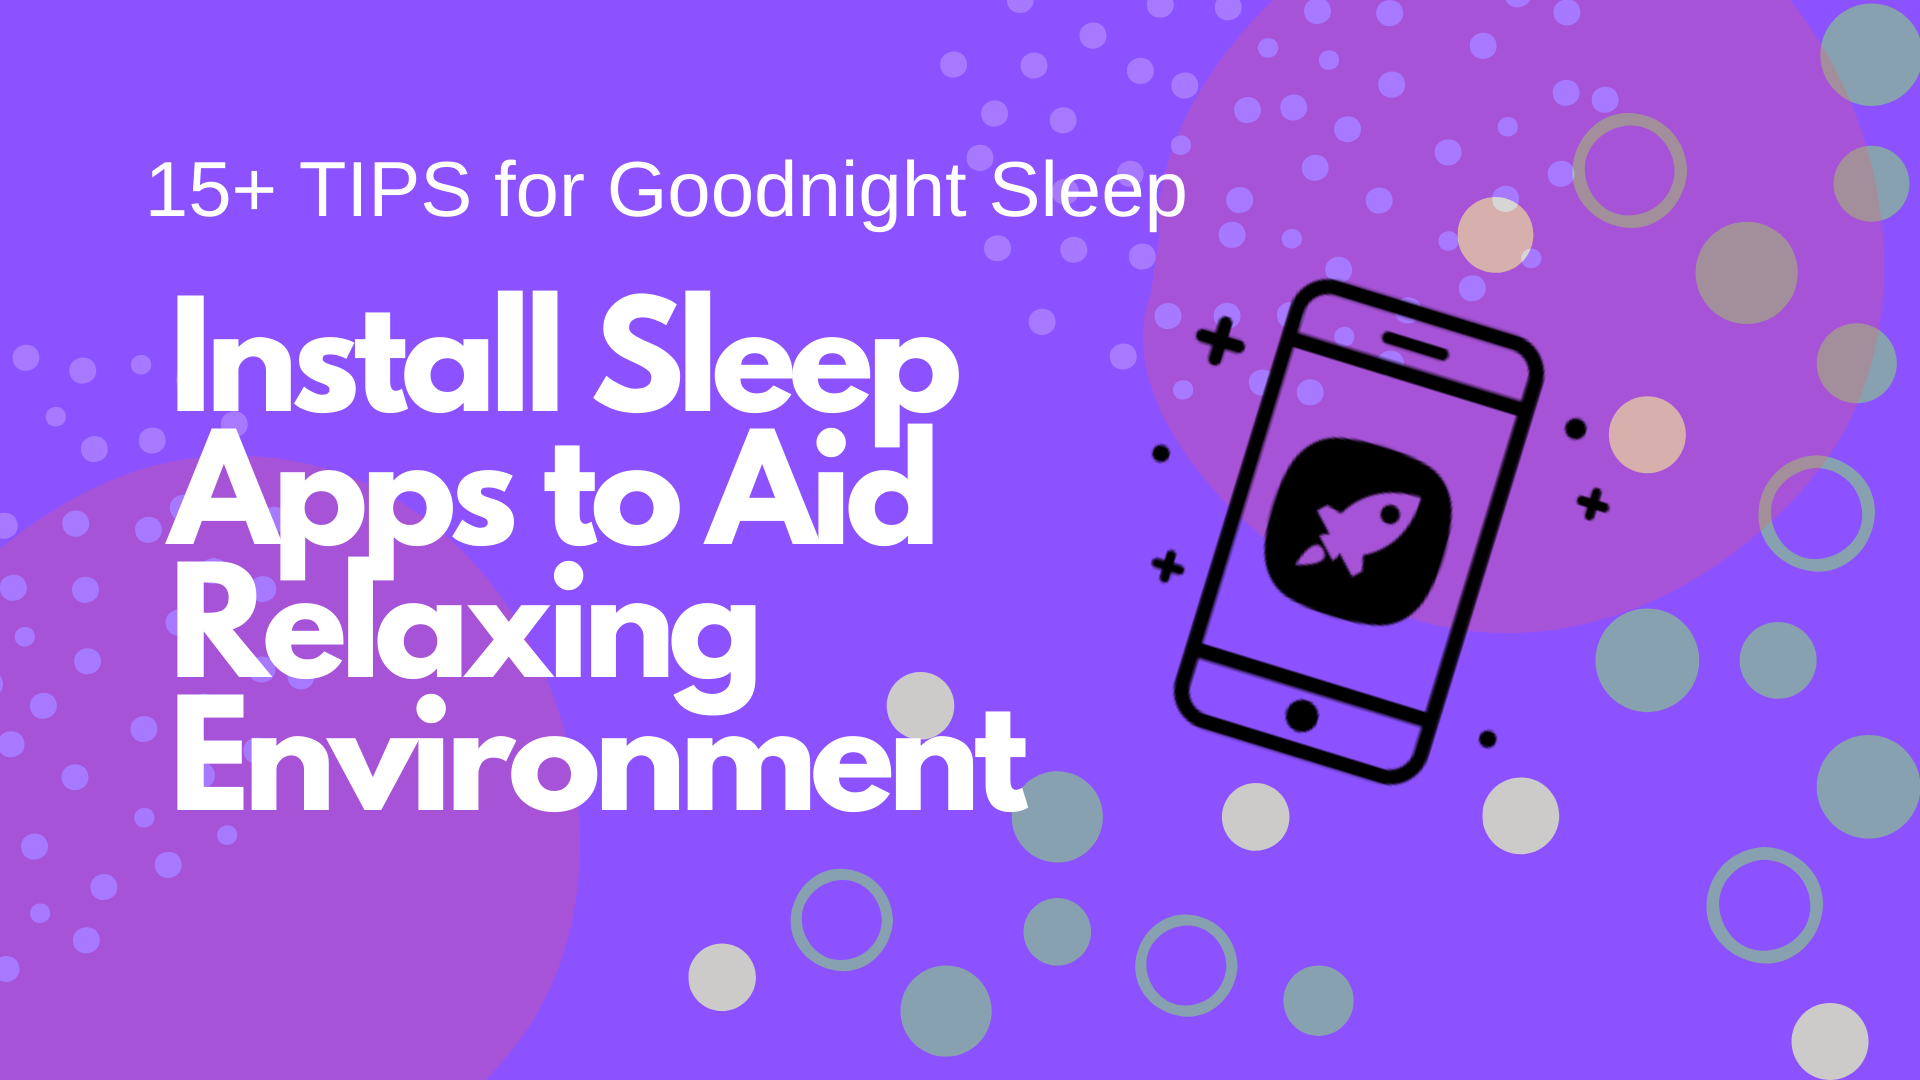 Install Sleep Apps that Aid Relaxing